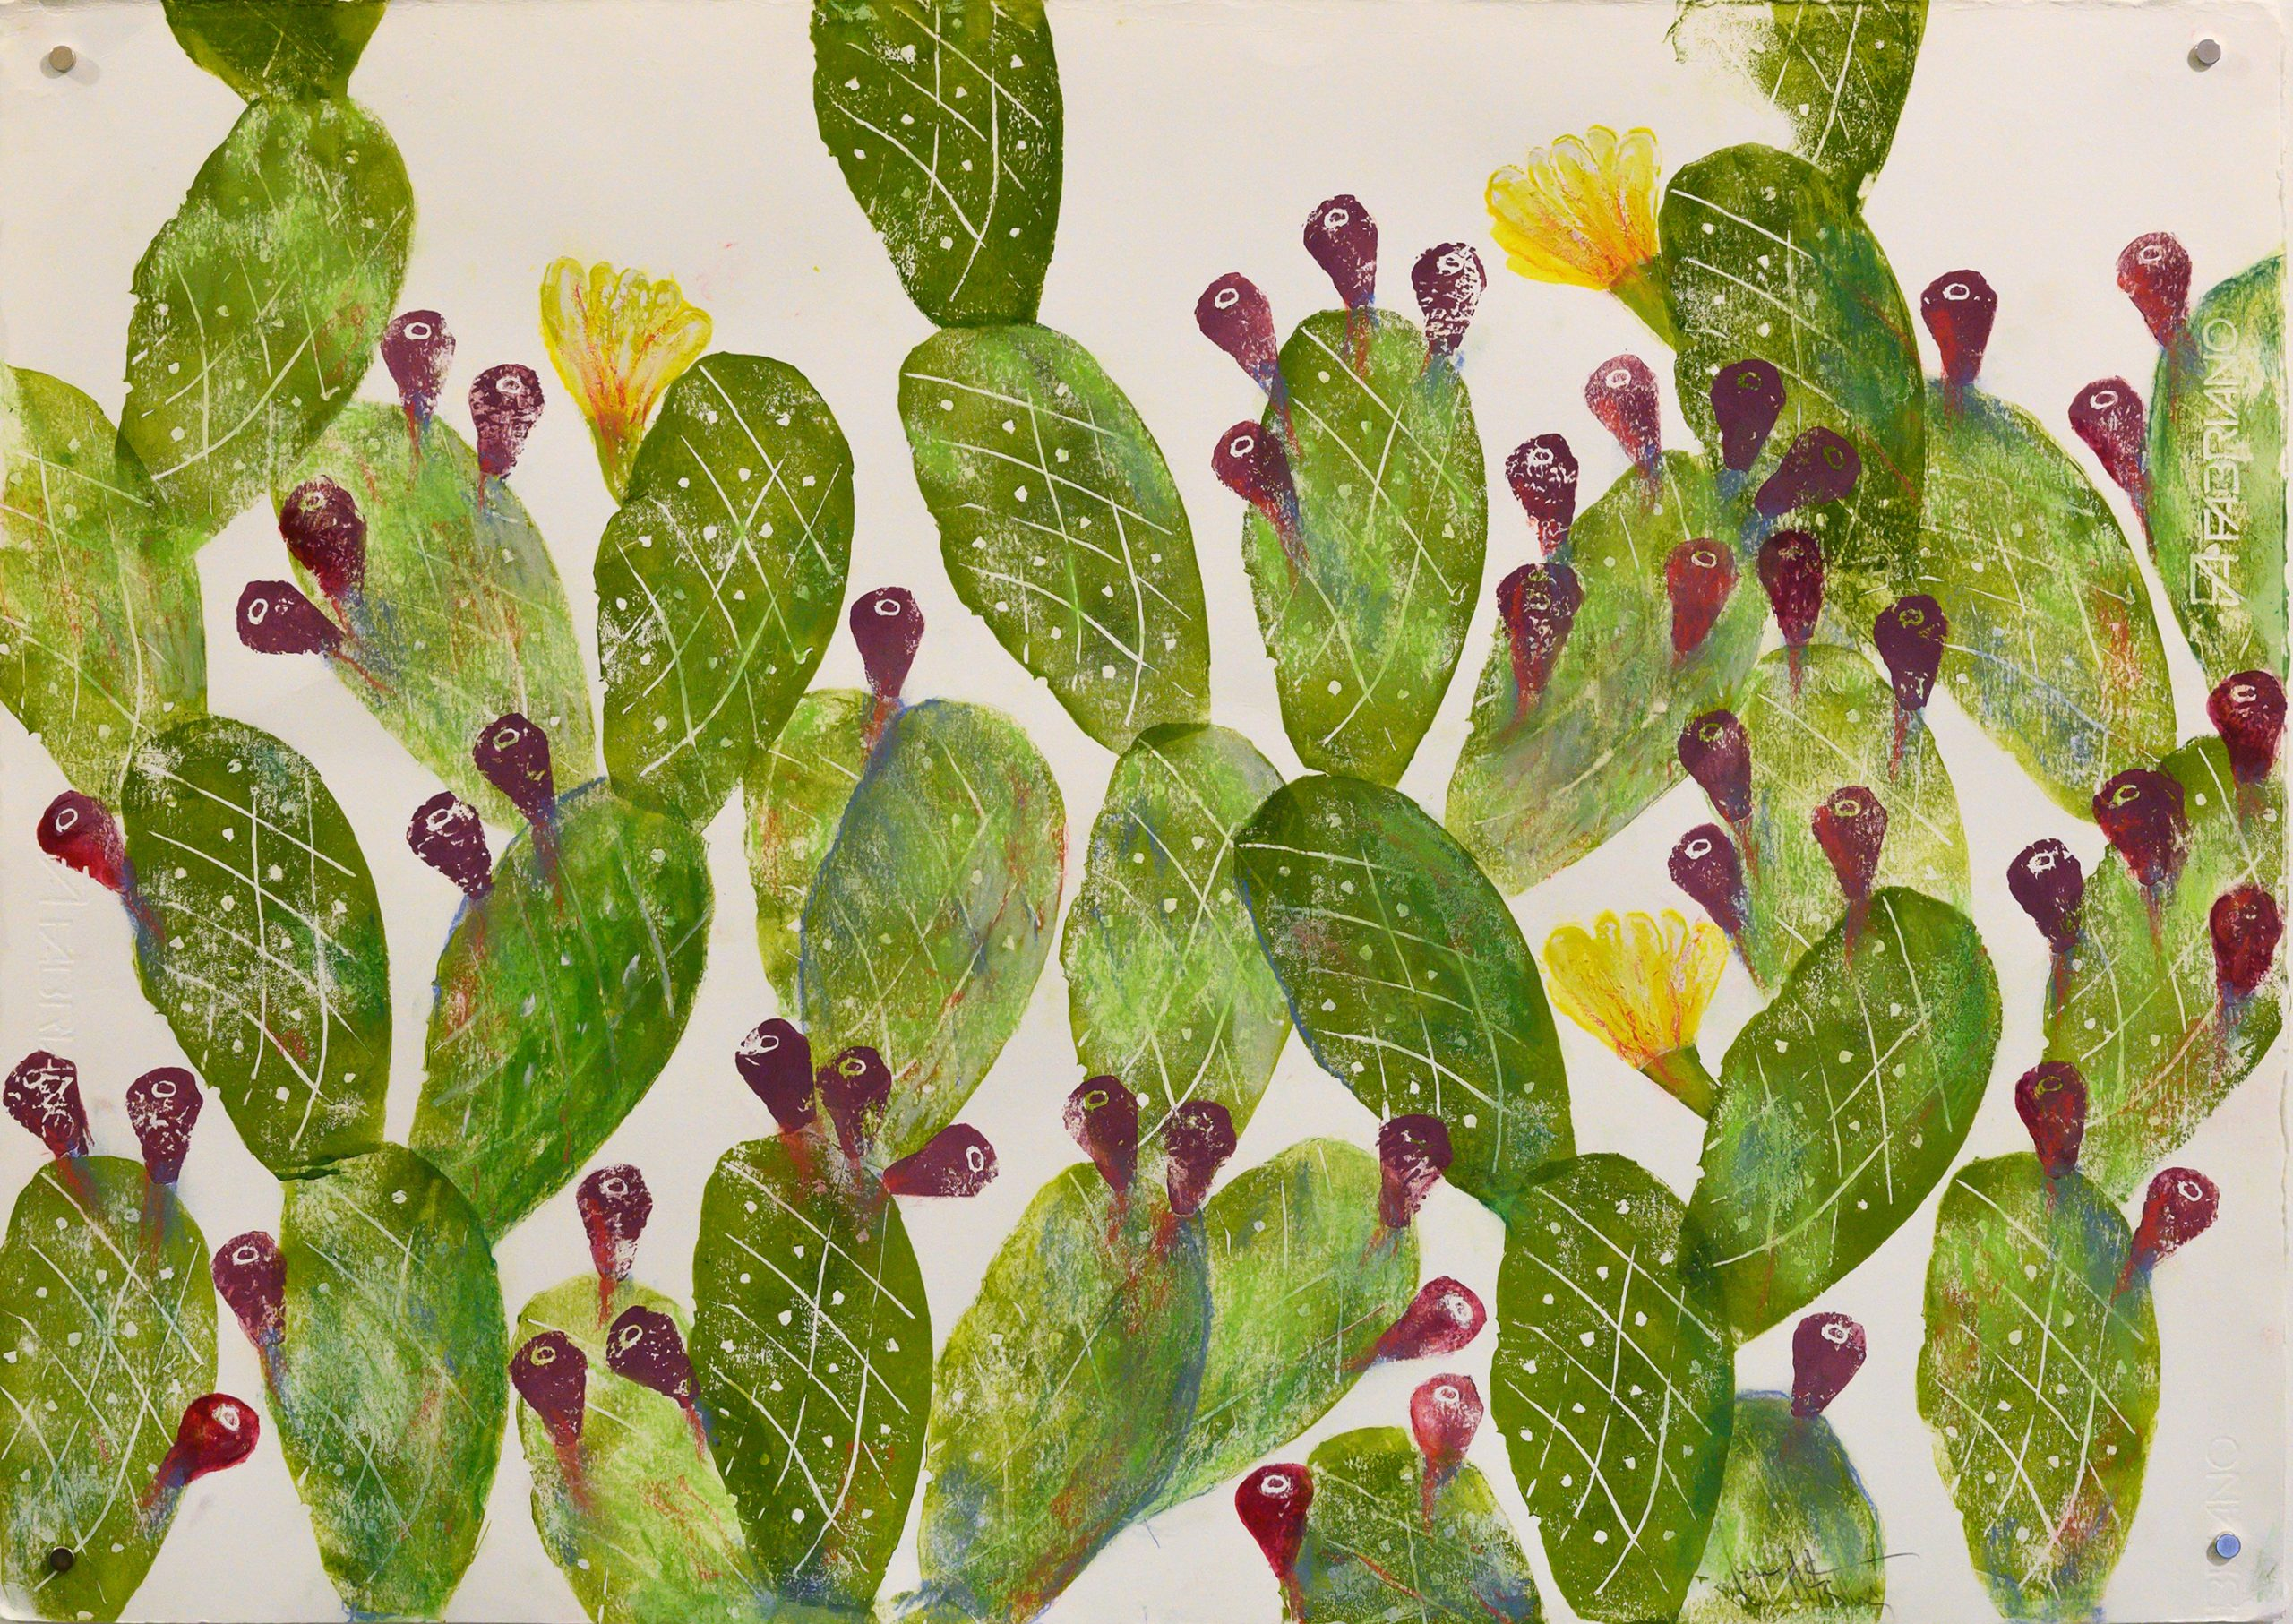 Unframed artwork of green prickly pear plant with red & yellow flowers